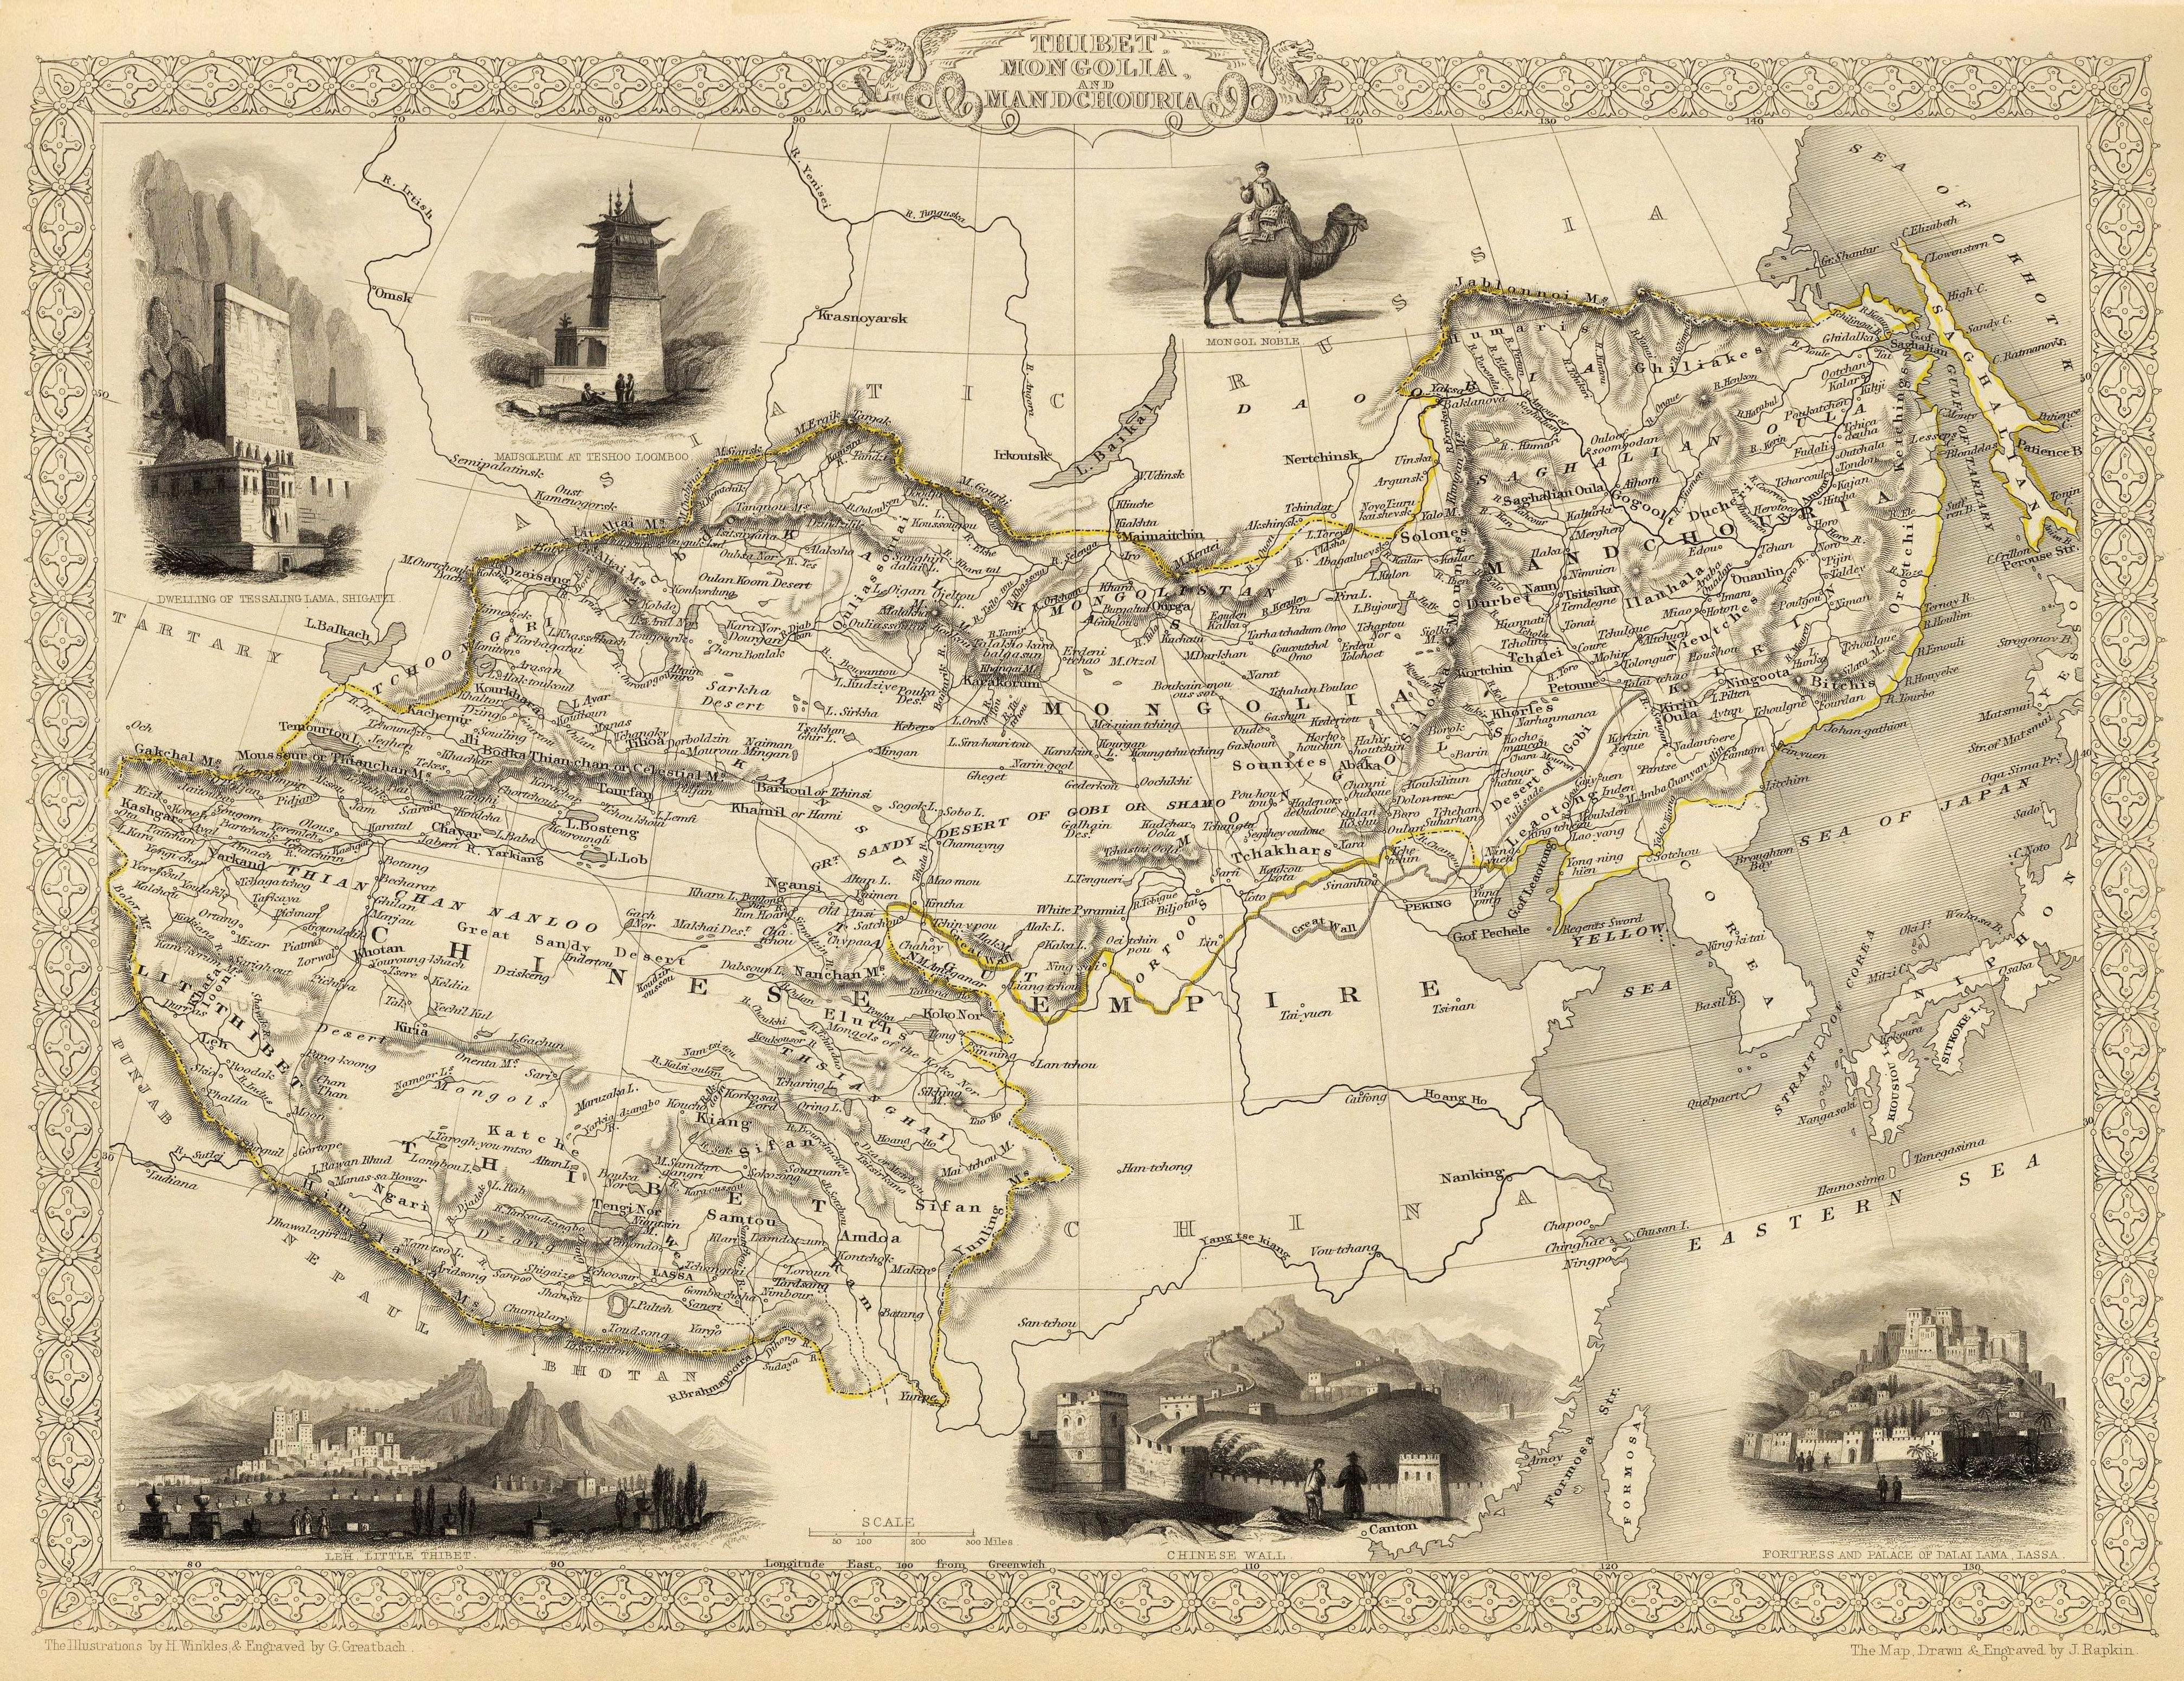 Old map of Tibet | Image credit: Wikimedia Commons